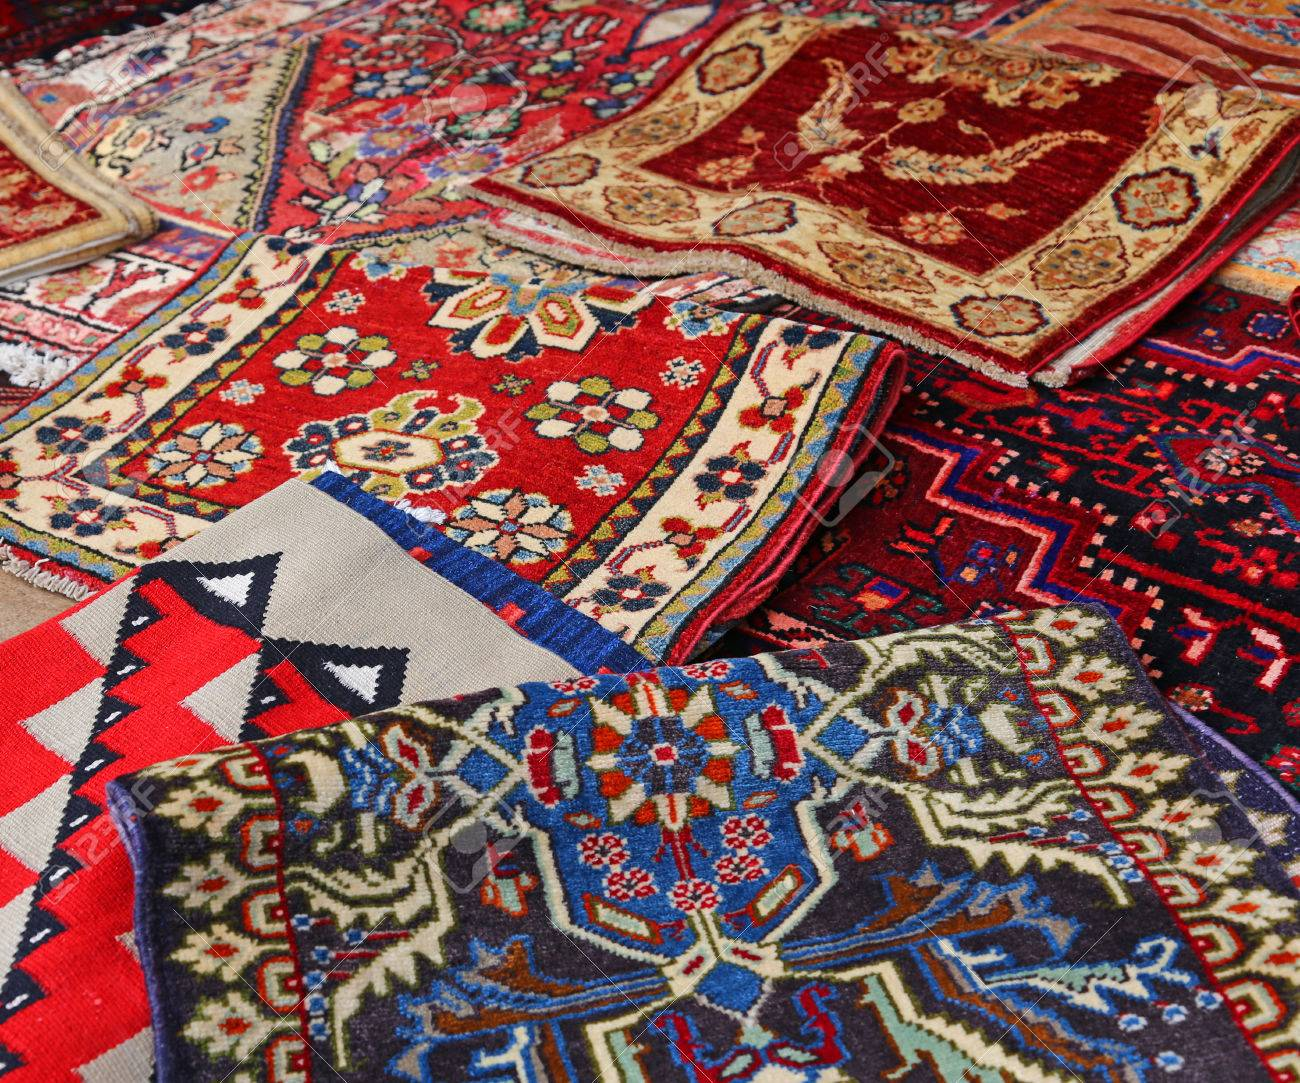 Oriental Rugs Handmade Wool For Sale In The Shop Of Fine Rugs Stock Photo    35216917